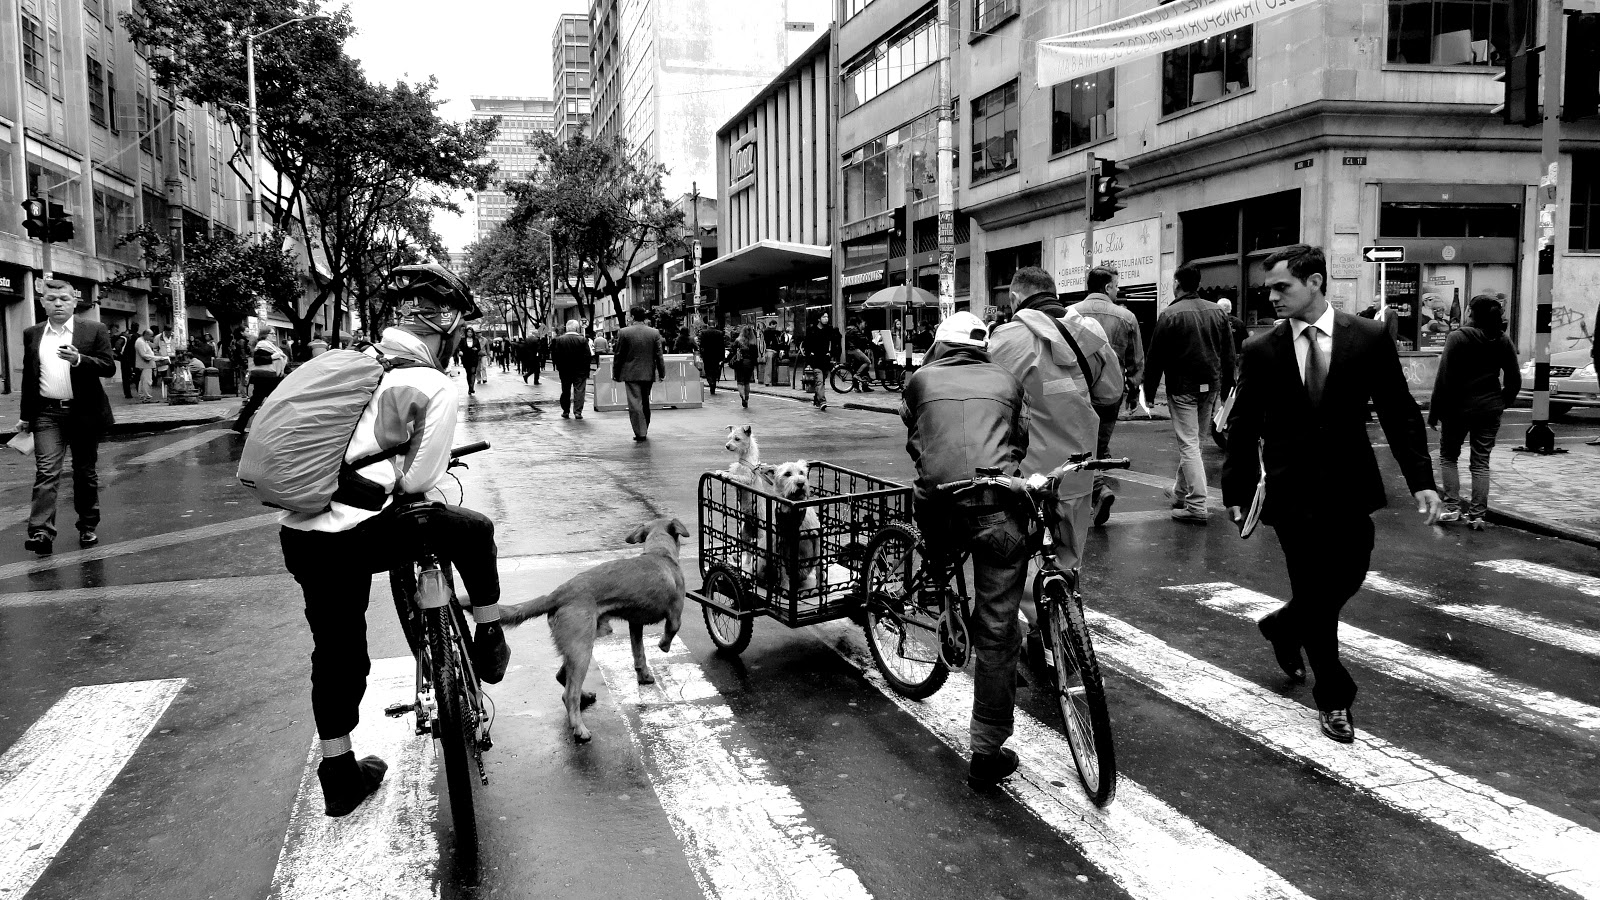 Images from the development of the research project  Sensing La Séptima: A Haptic Approach to Urban Practices in Bogotá's Public Spaces,  2014. Image courtesy of the Author